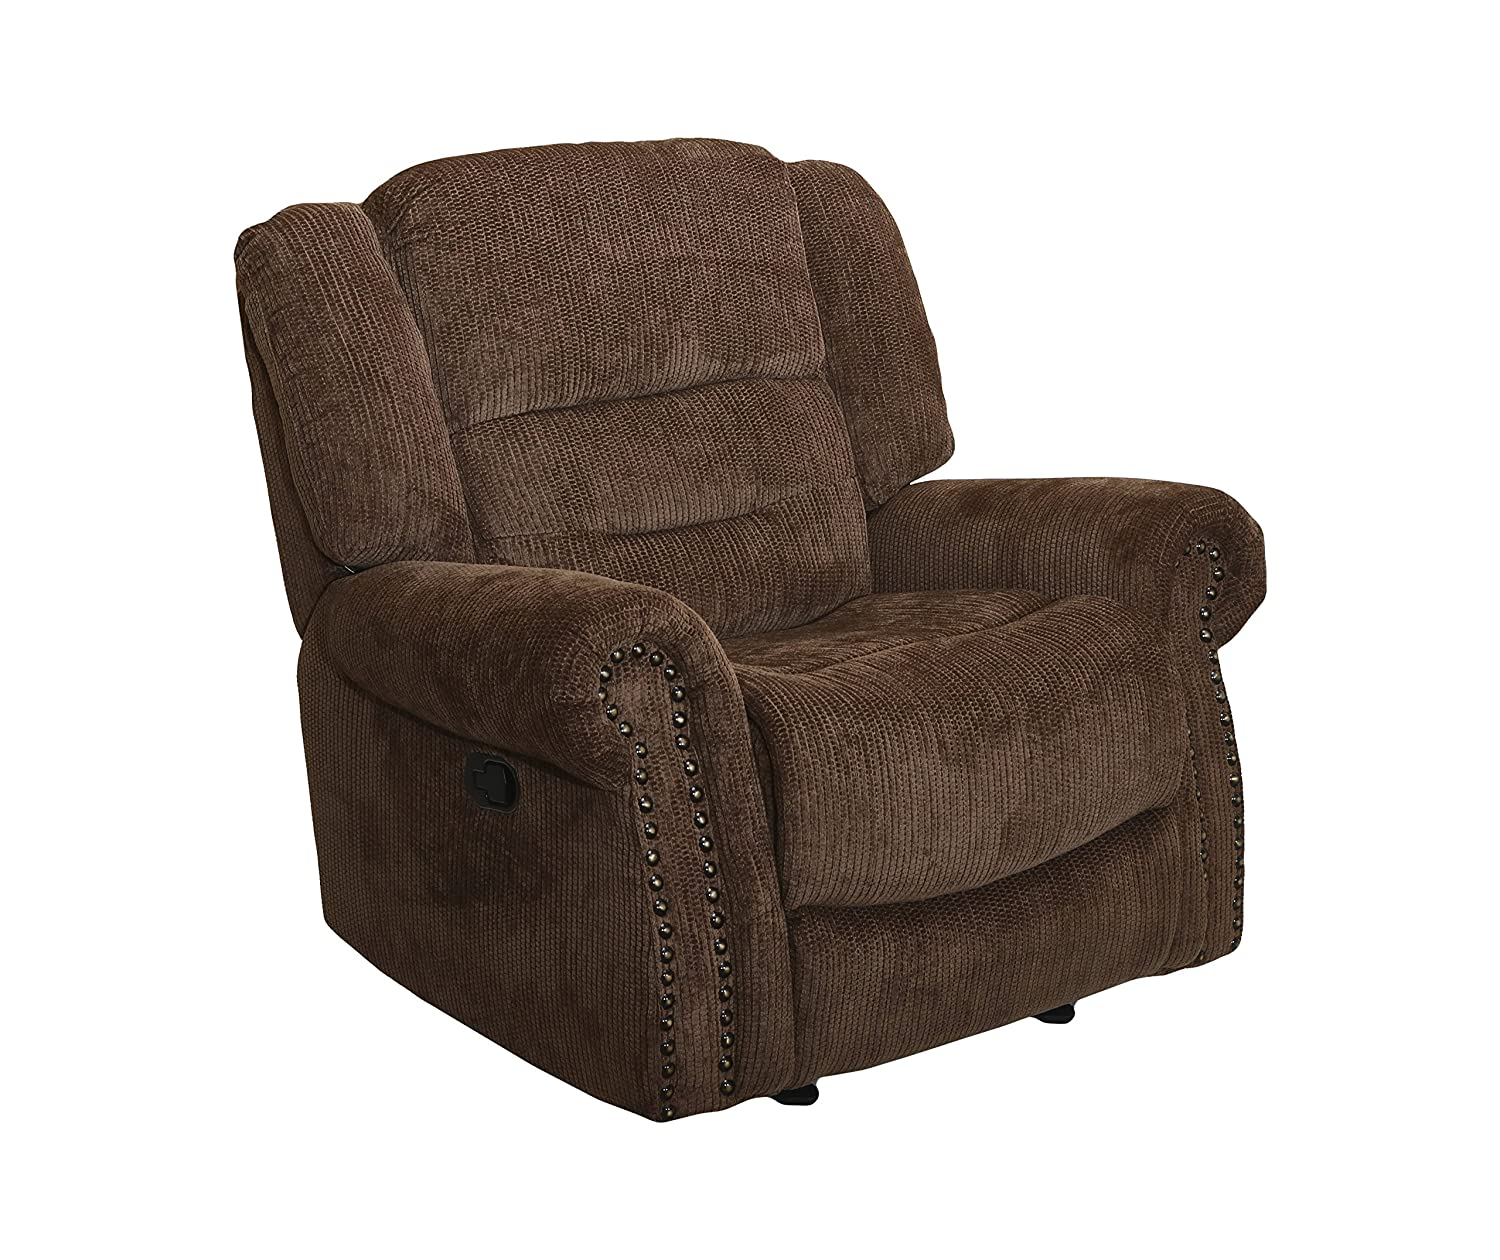 New Classic Furniture Jasper Upholstery Glider Recliner, Manual, Panda